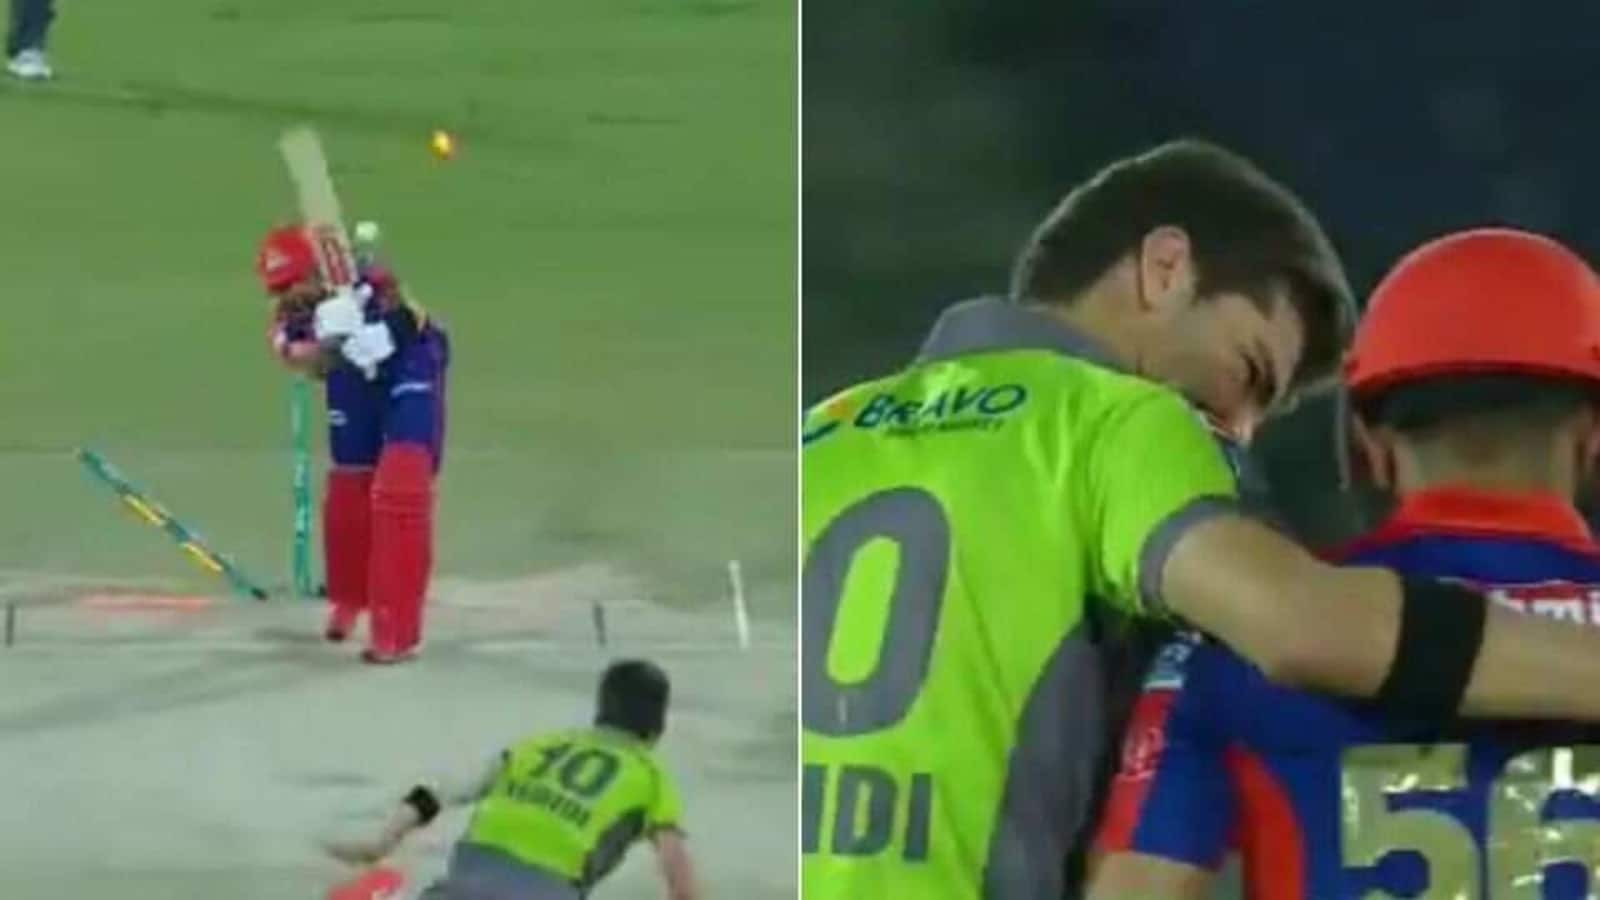 PSL 2021: Shaheen Shah Afridi hugs Babar Azam after knocking him over in style - WATCH - Hindustan Times